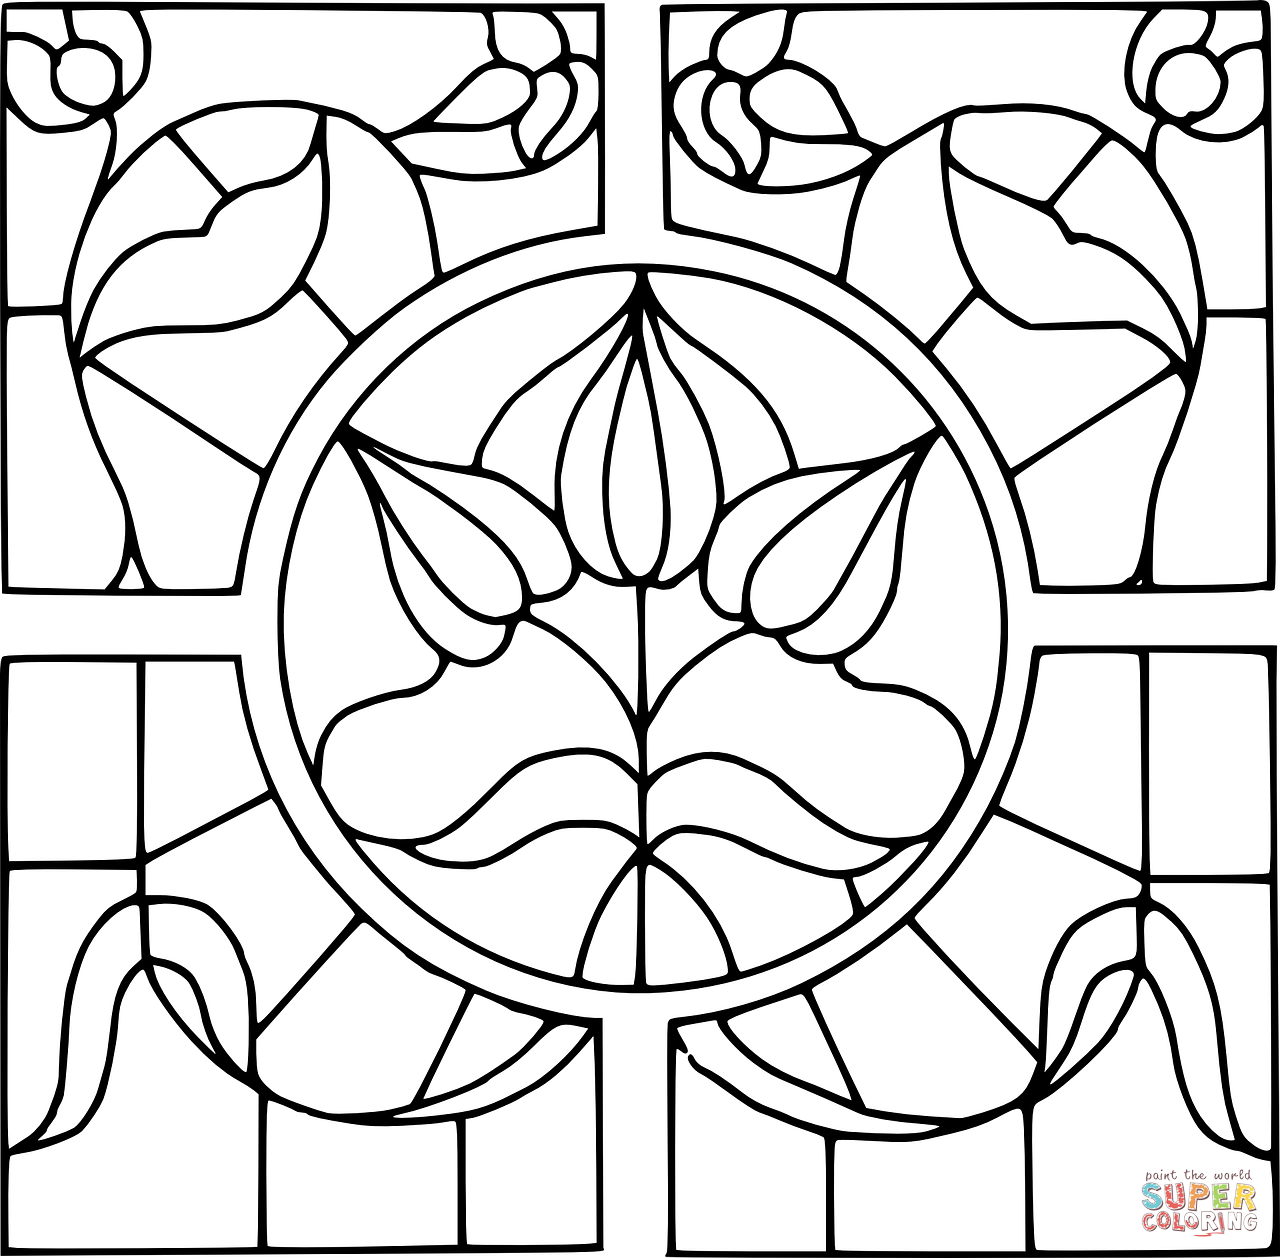 Stained Glass Christmas To Color Black And White Clipart